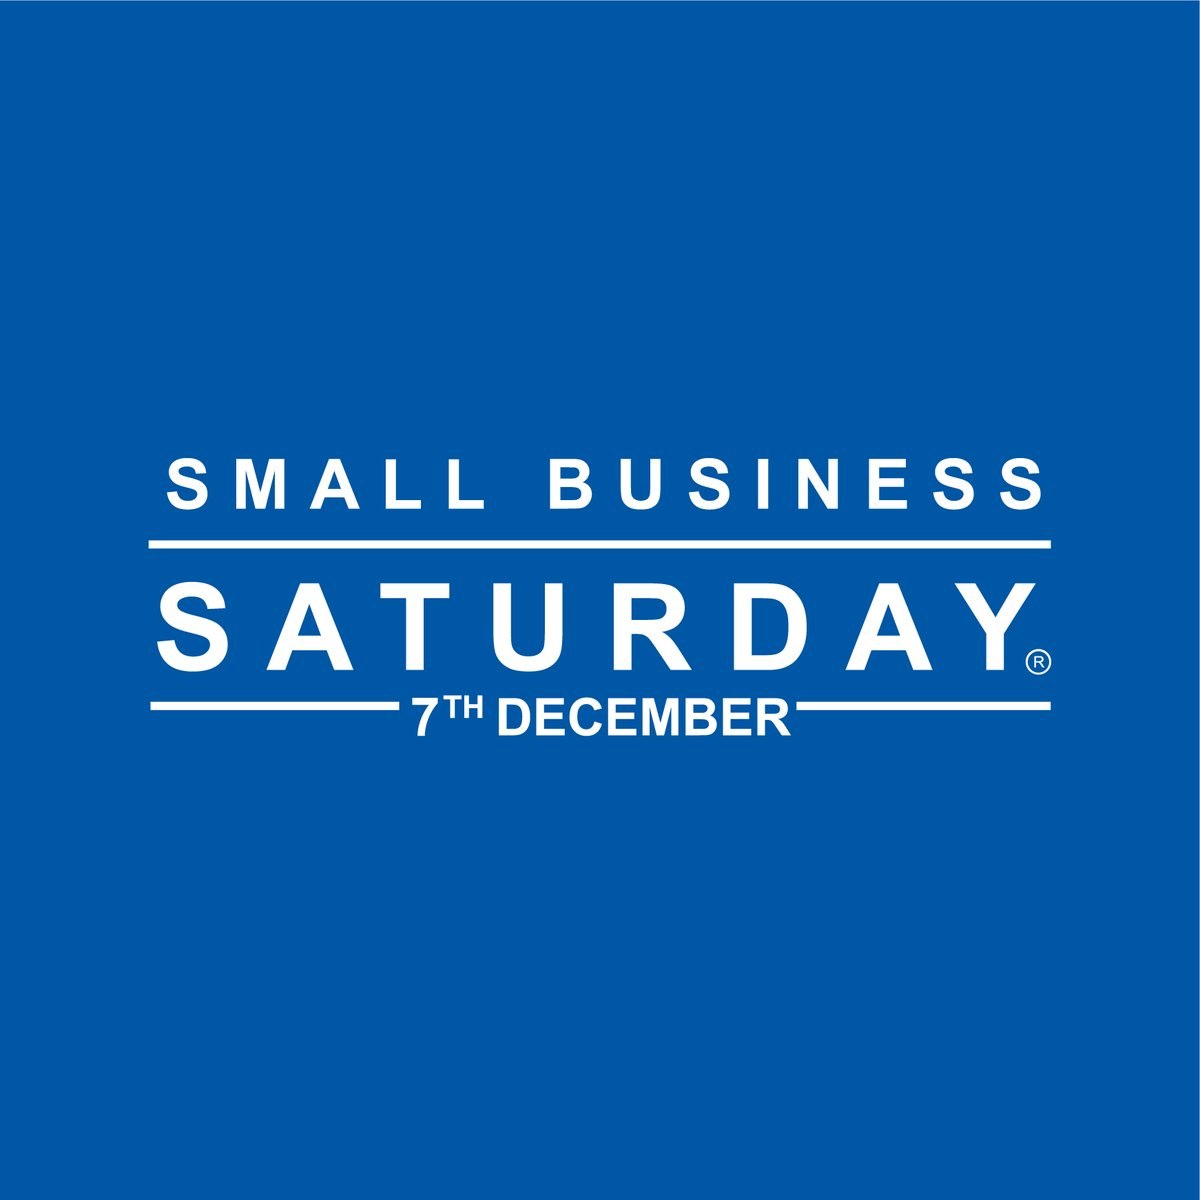 Small Business Saturday 7 December 2019 | Business Action | Independent North Devon-based business magazine | North Devon business news